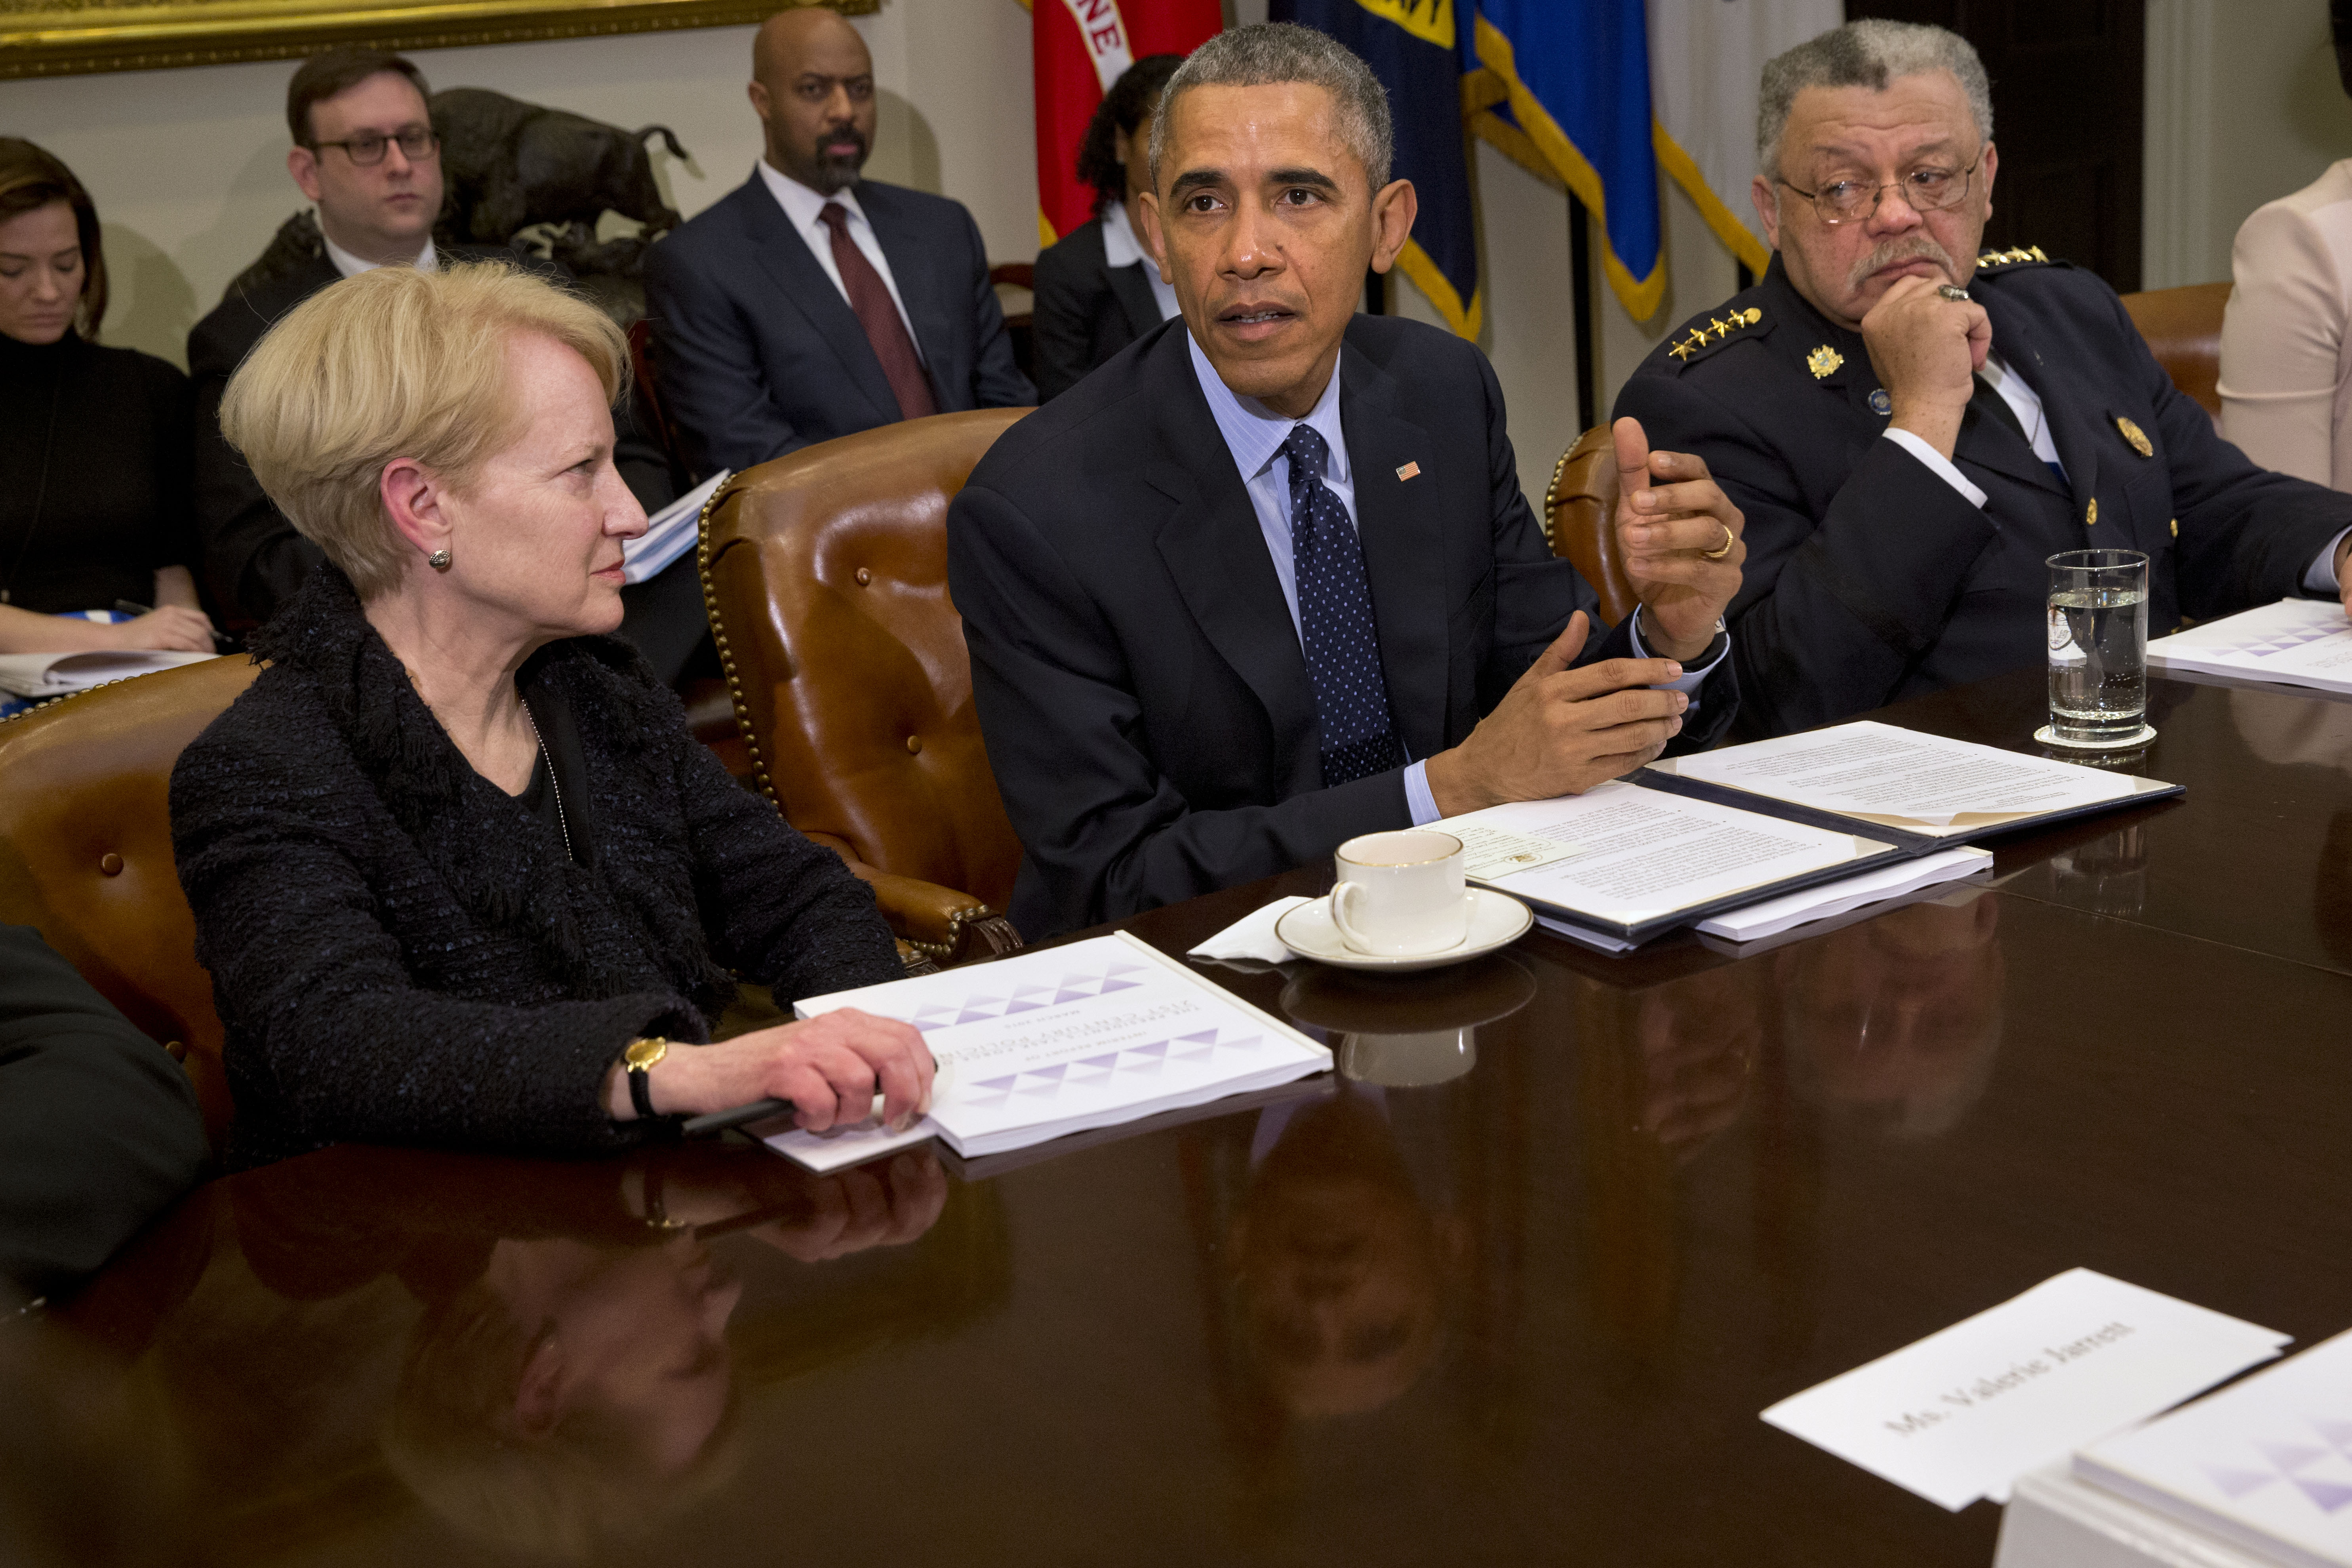 President Barack Obama, flanked by former Assistant Attorney General Laurie Robinson, left, and Philadelphia Police Commissioner Charles Ramsey, speaks during a meeting with members of the Task Force on 21st Century Policing